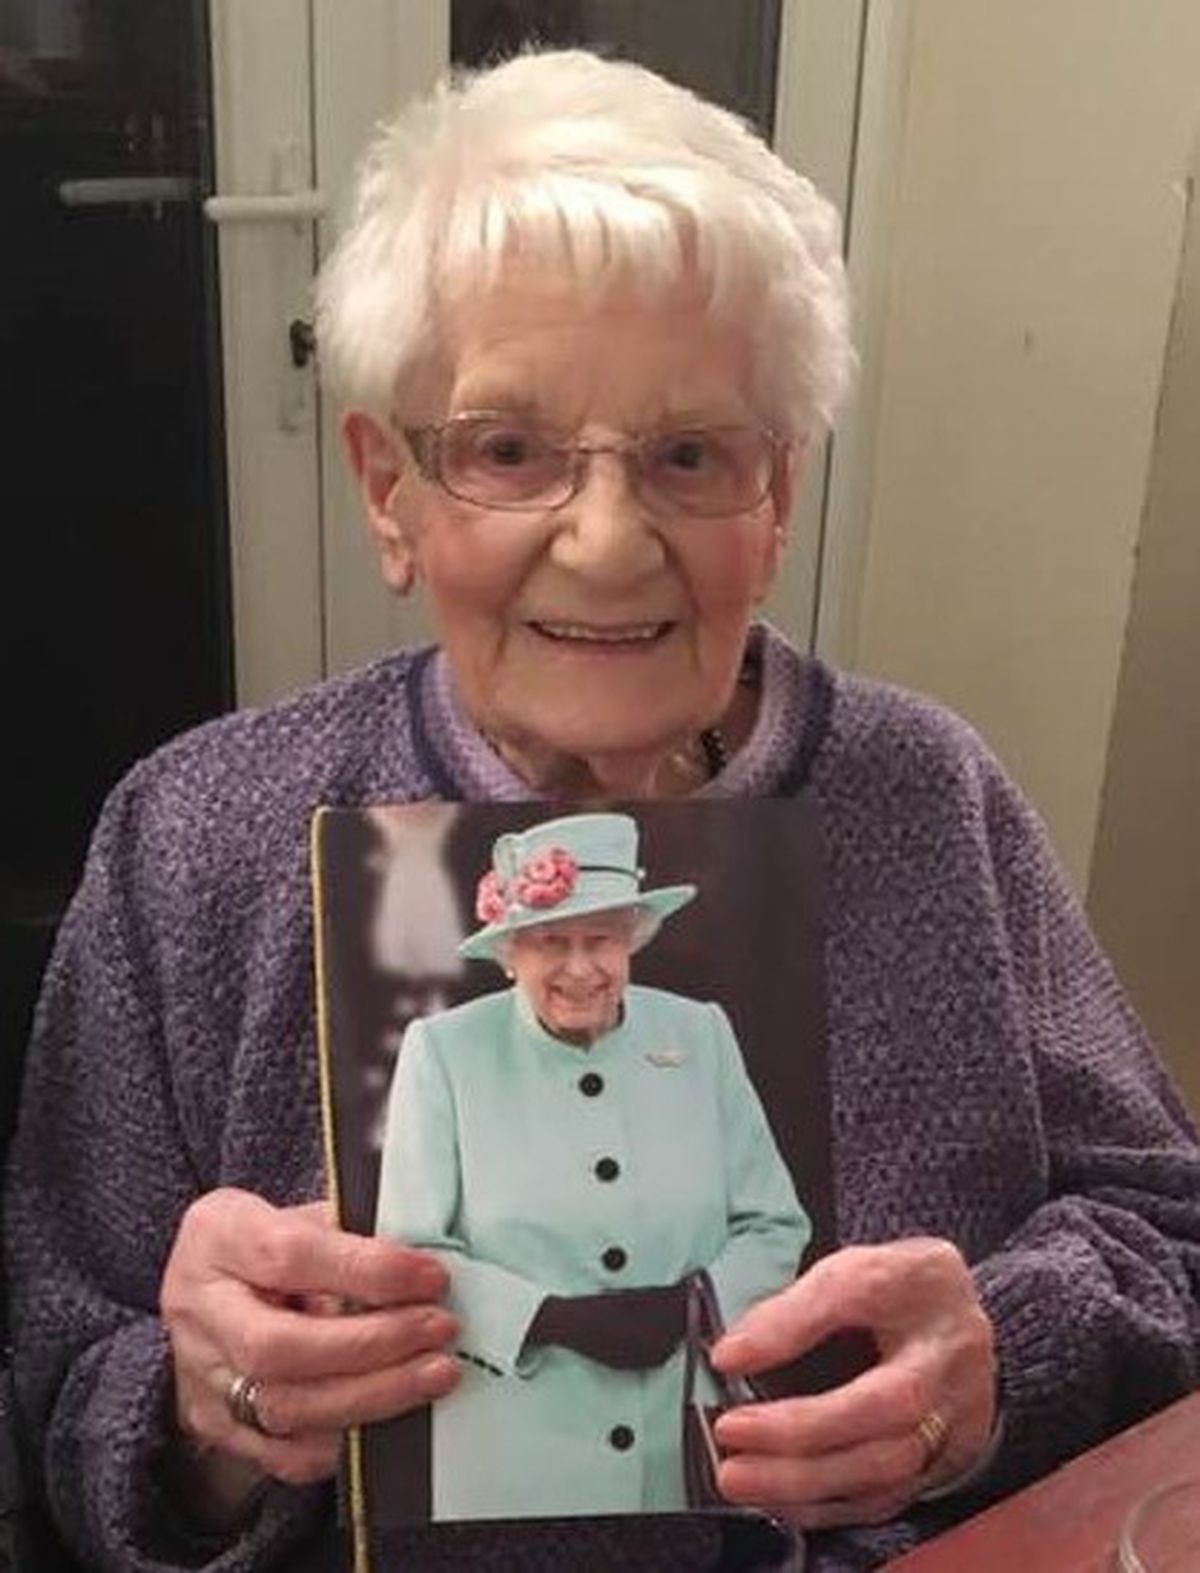 Joan Link celebrates her 100th birthday with a card from the Queen